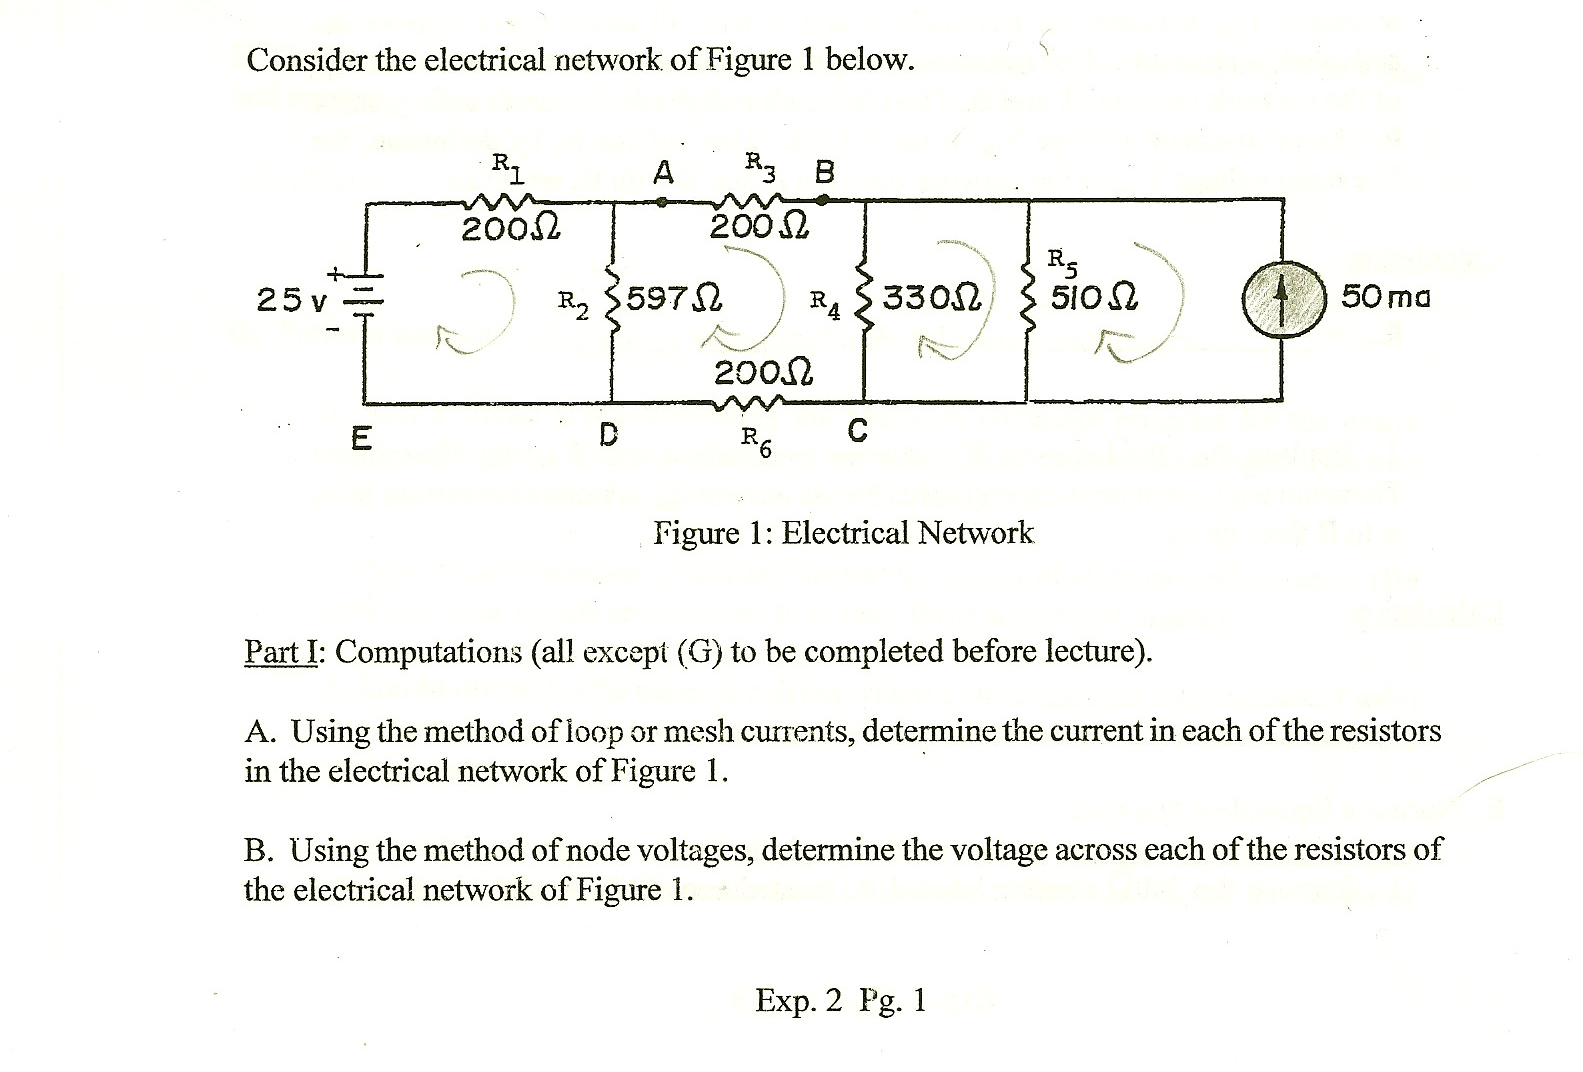 Consider the electrical network, of Figure 1 below